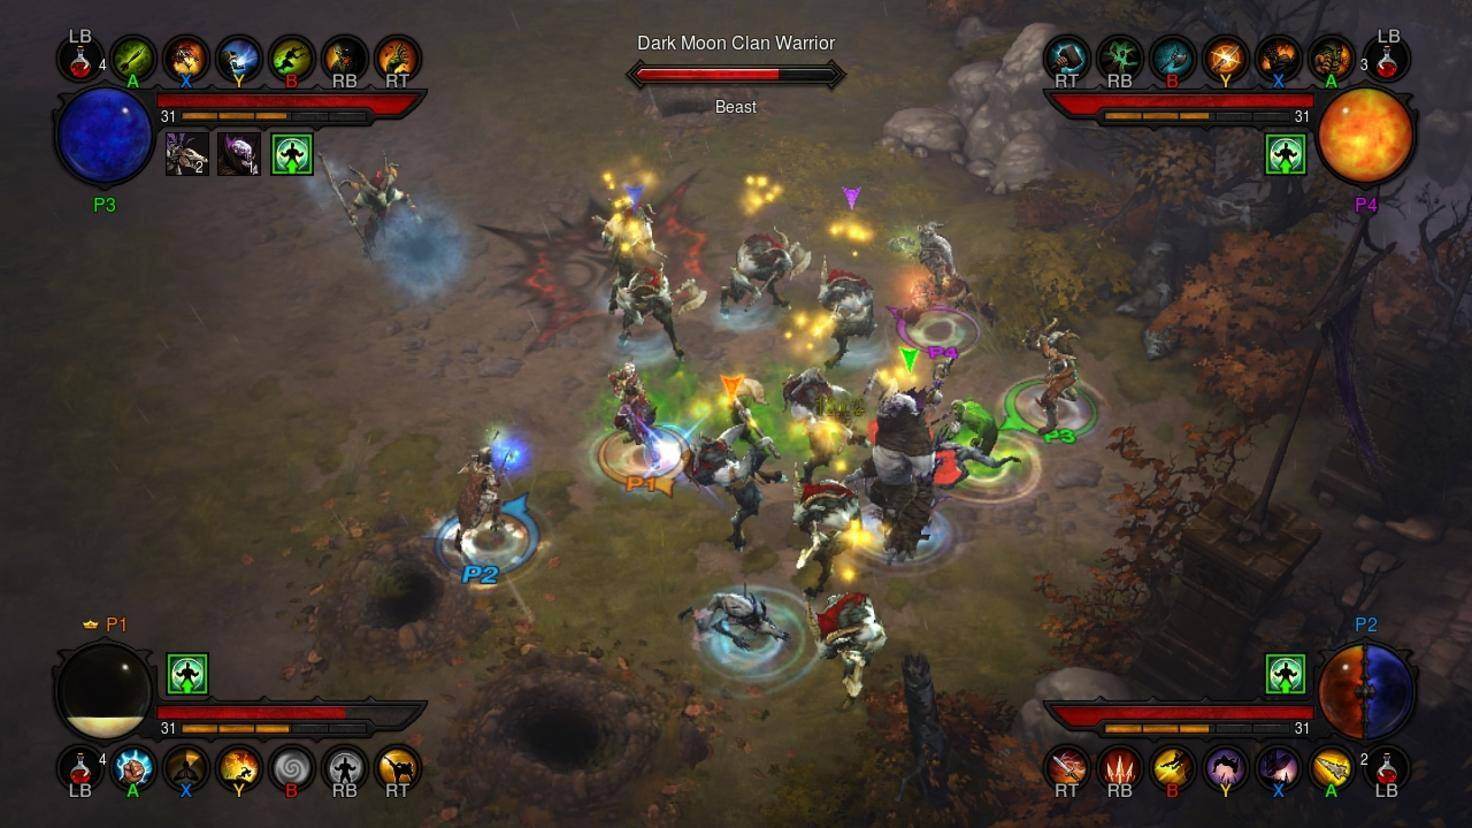 Diablo-3-Koop-Xbox-One-Four-Players